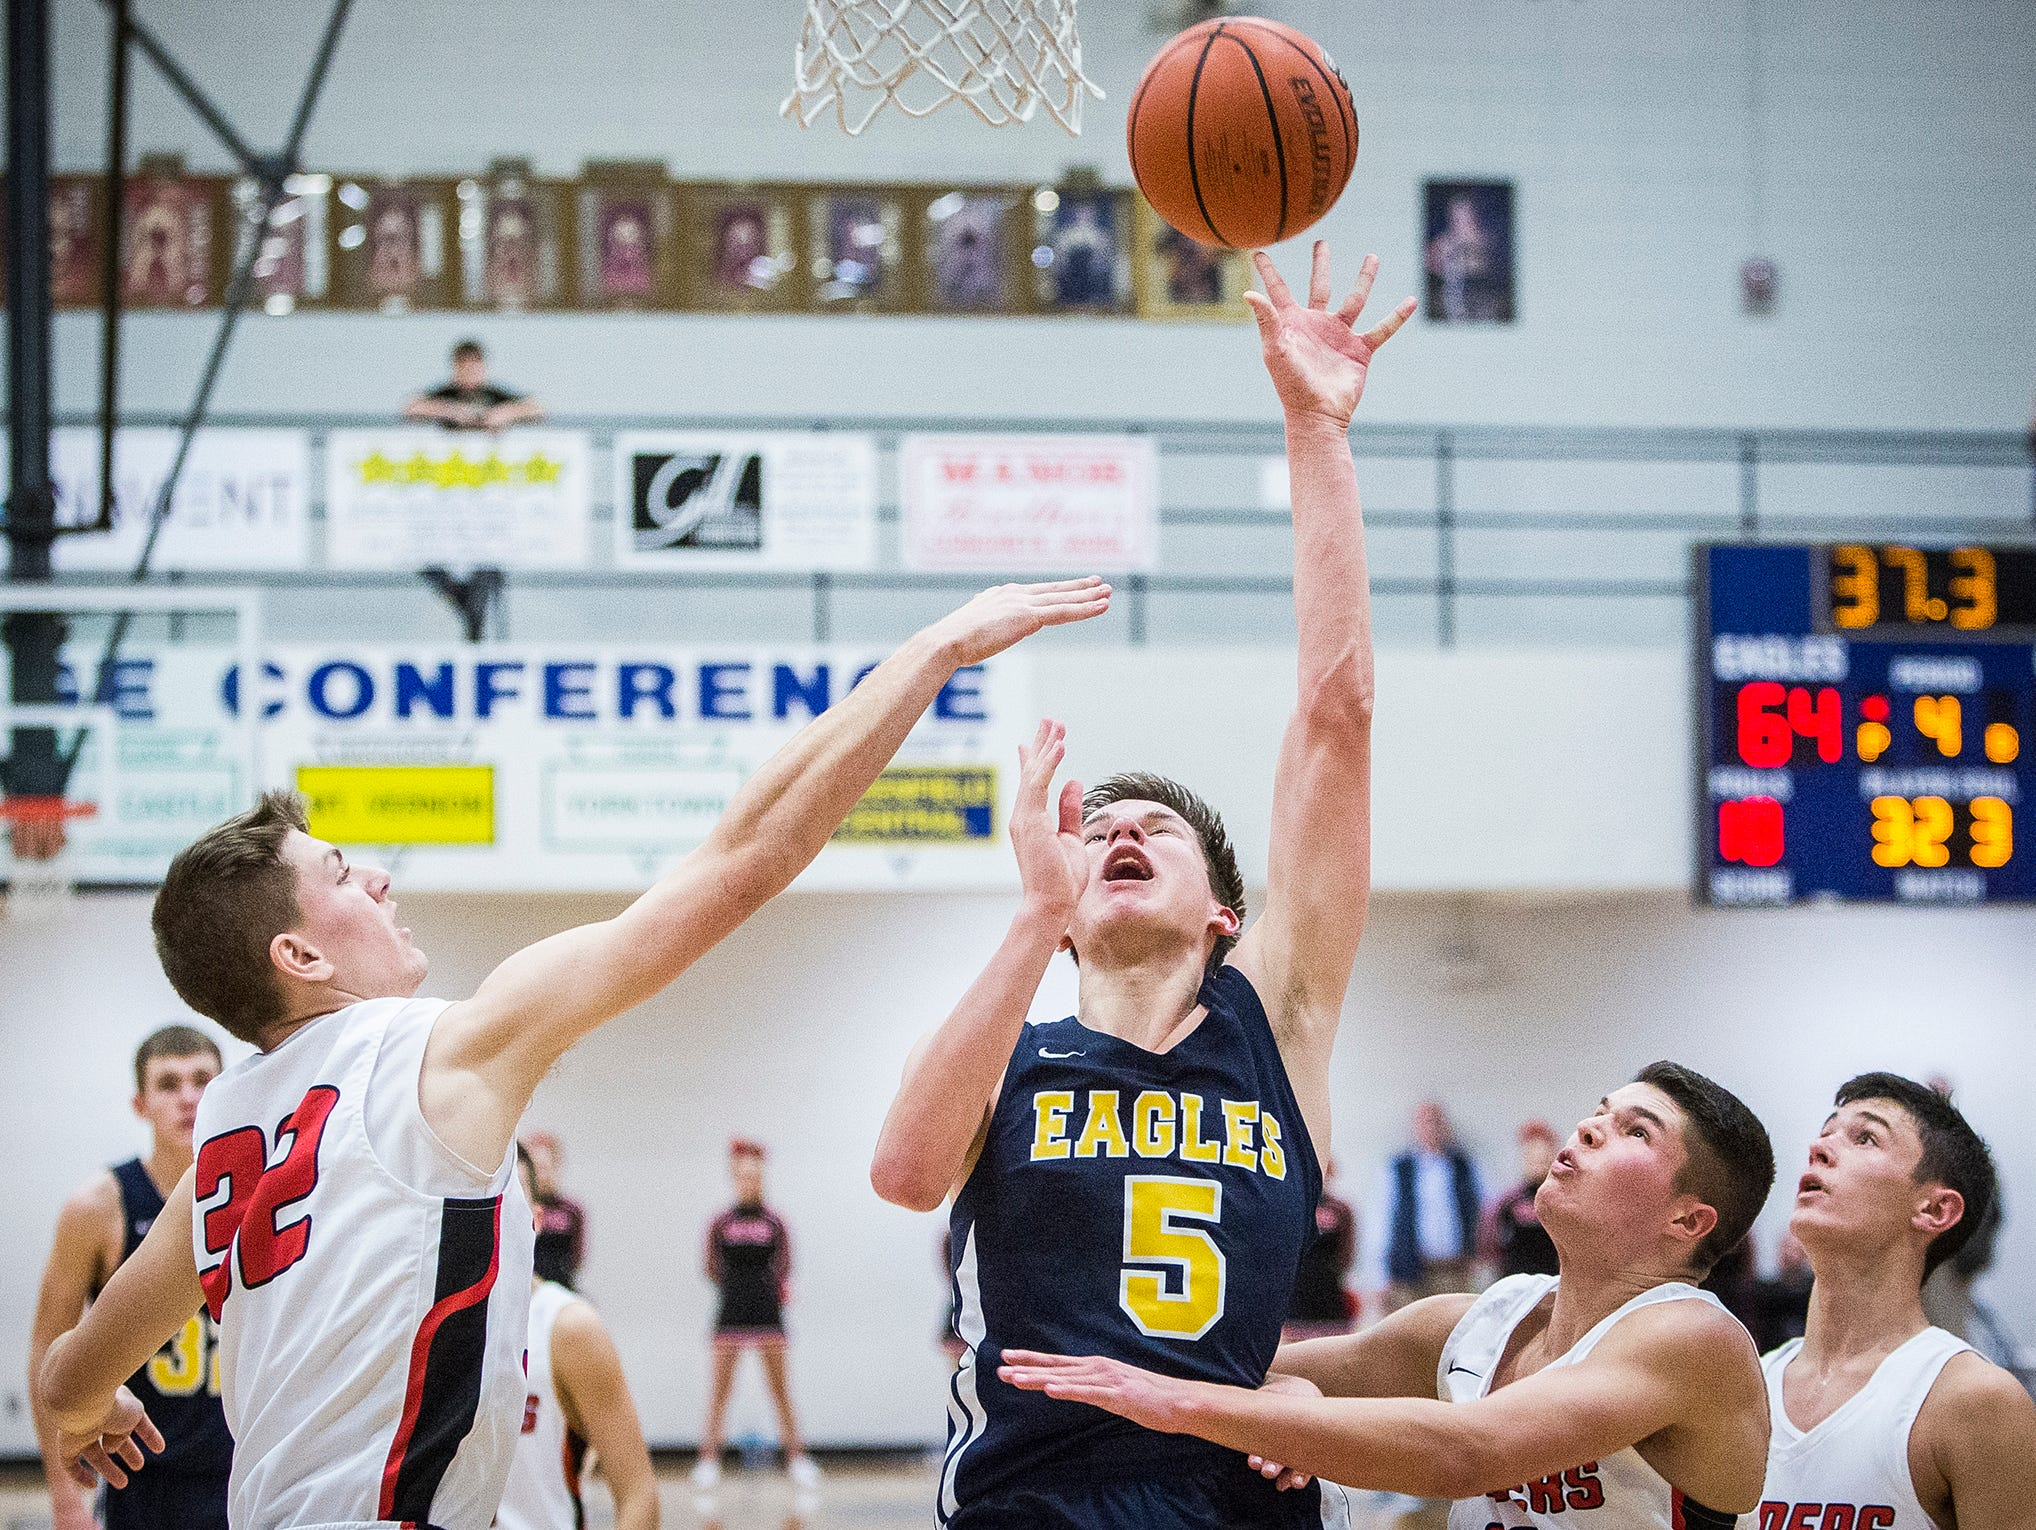 Delta's Josh Bryan shoots past Wapahani's defense during the Delaware County Basketball Tournament at Delta High School Tuesday, Jan. 8, 2019.